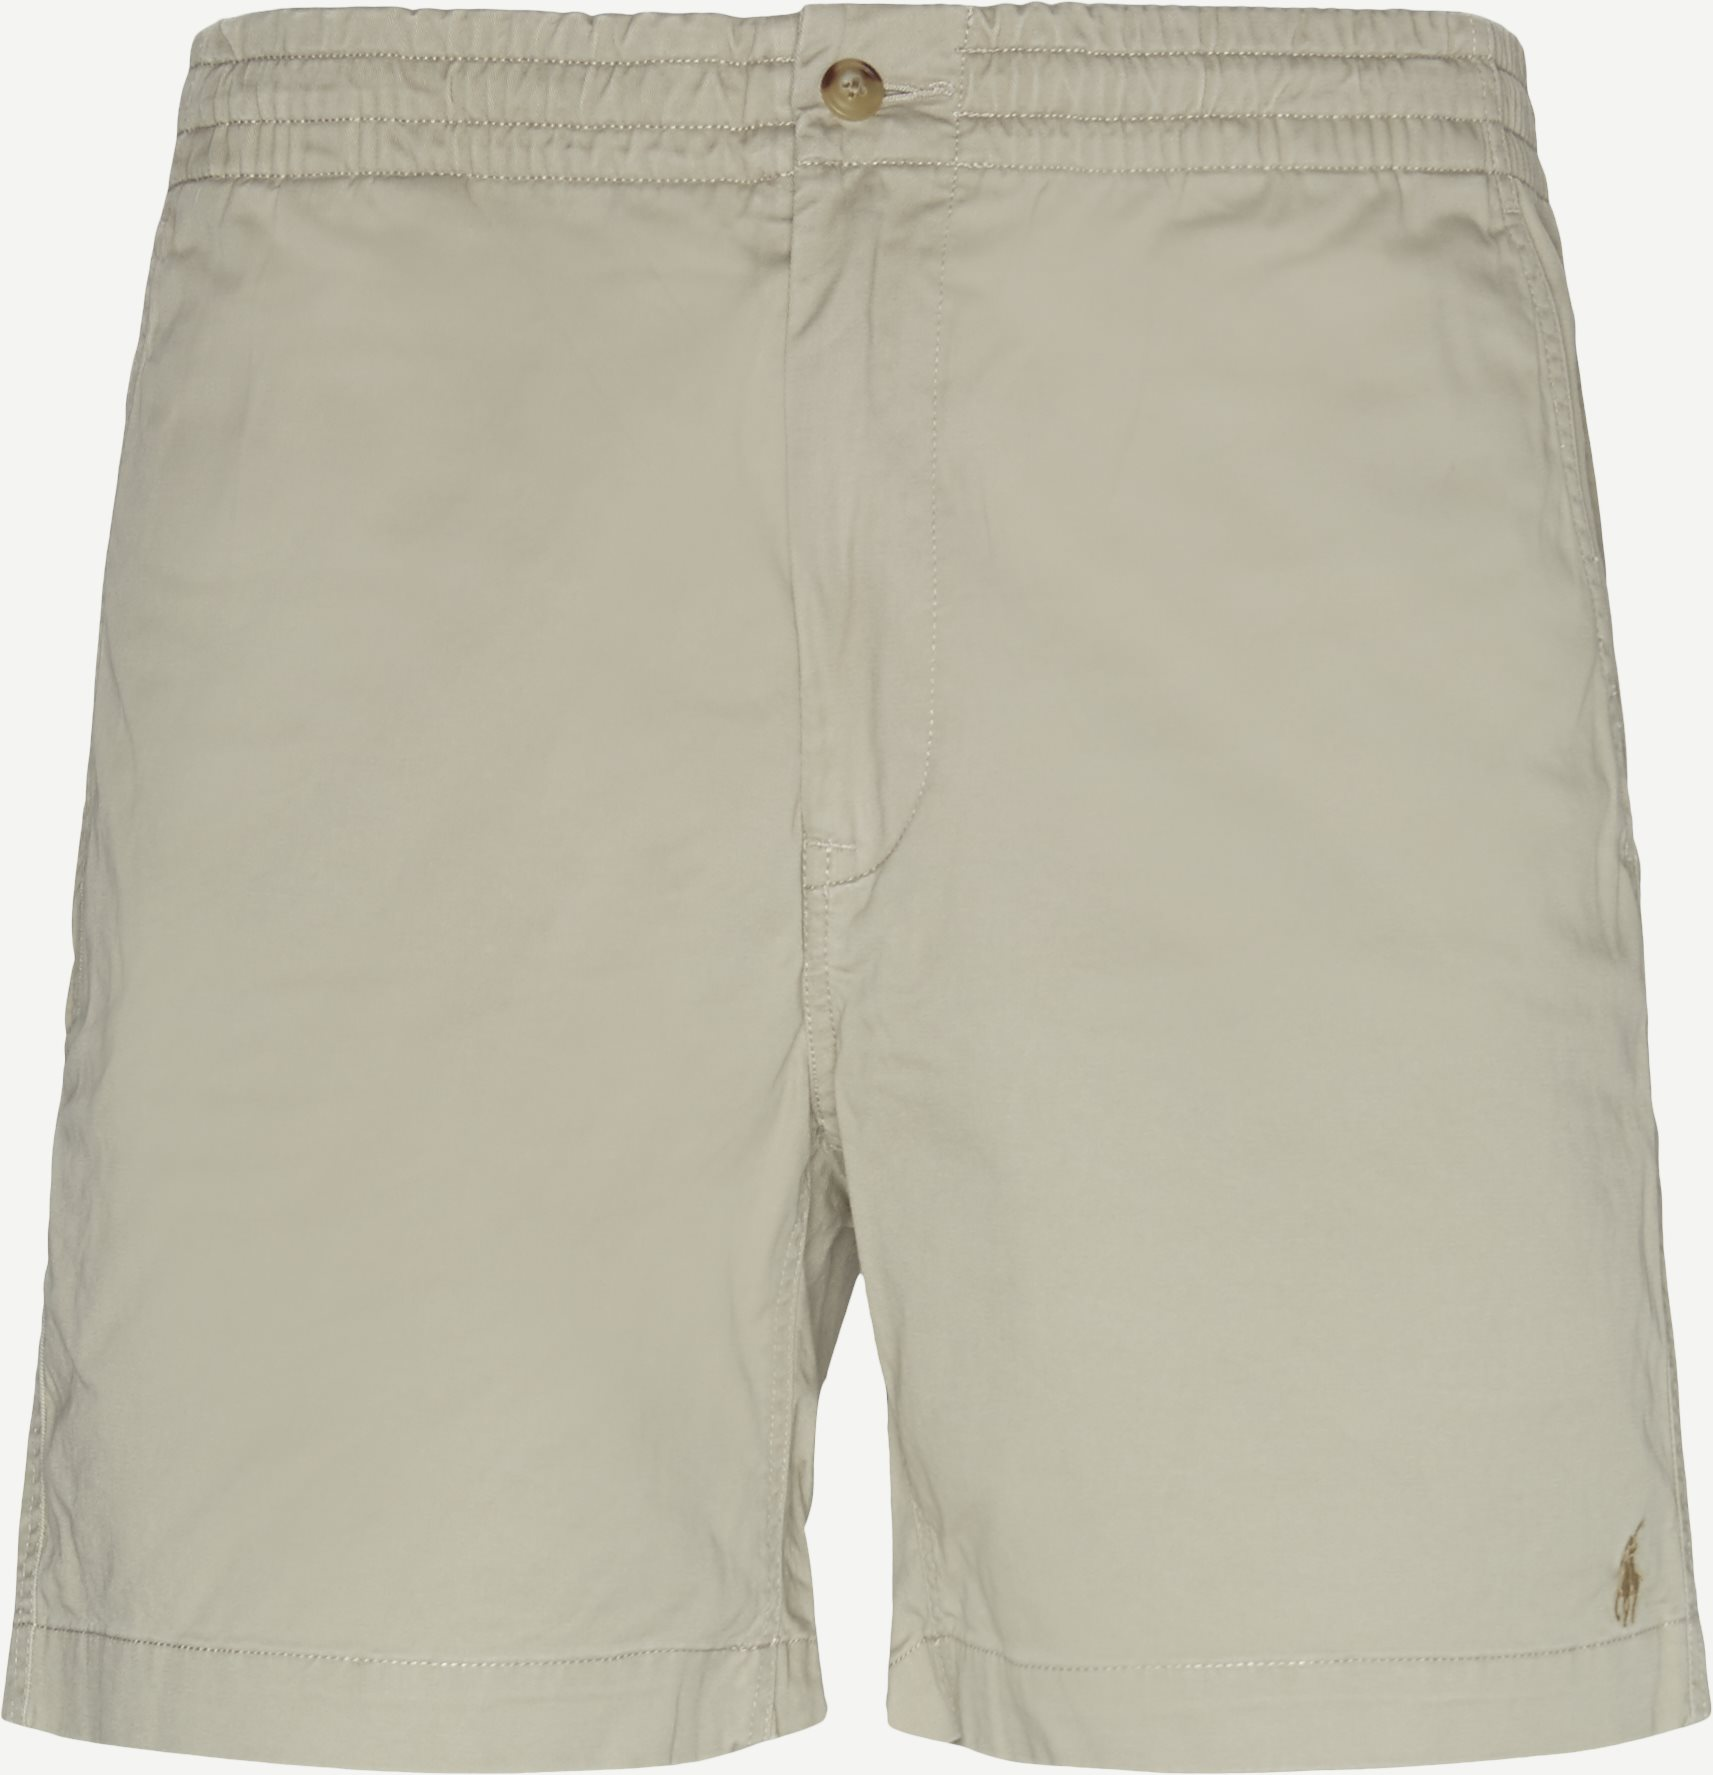 Shorts - Classic fit - Sand